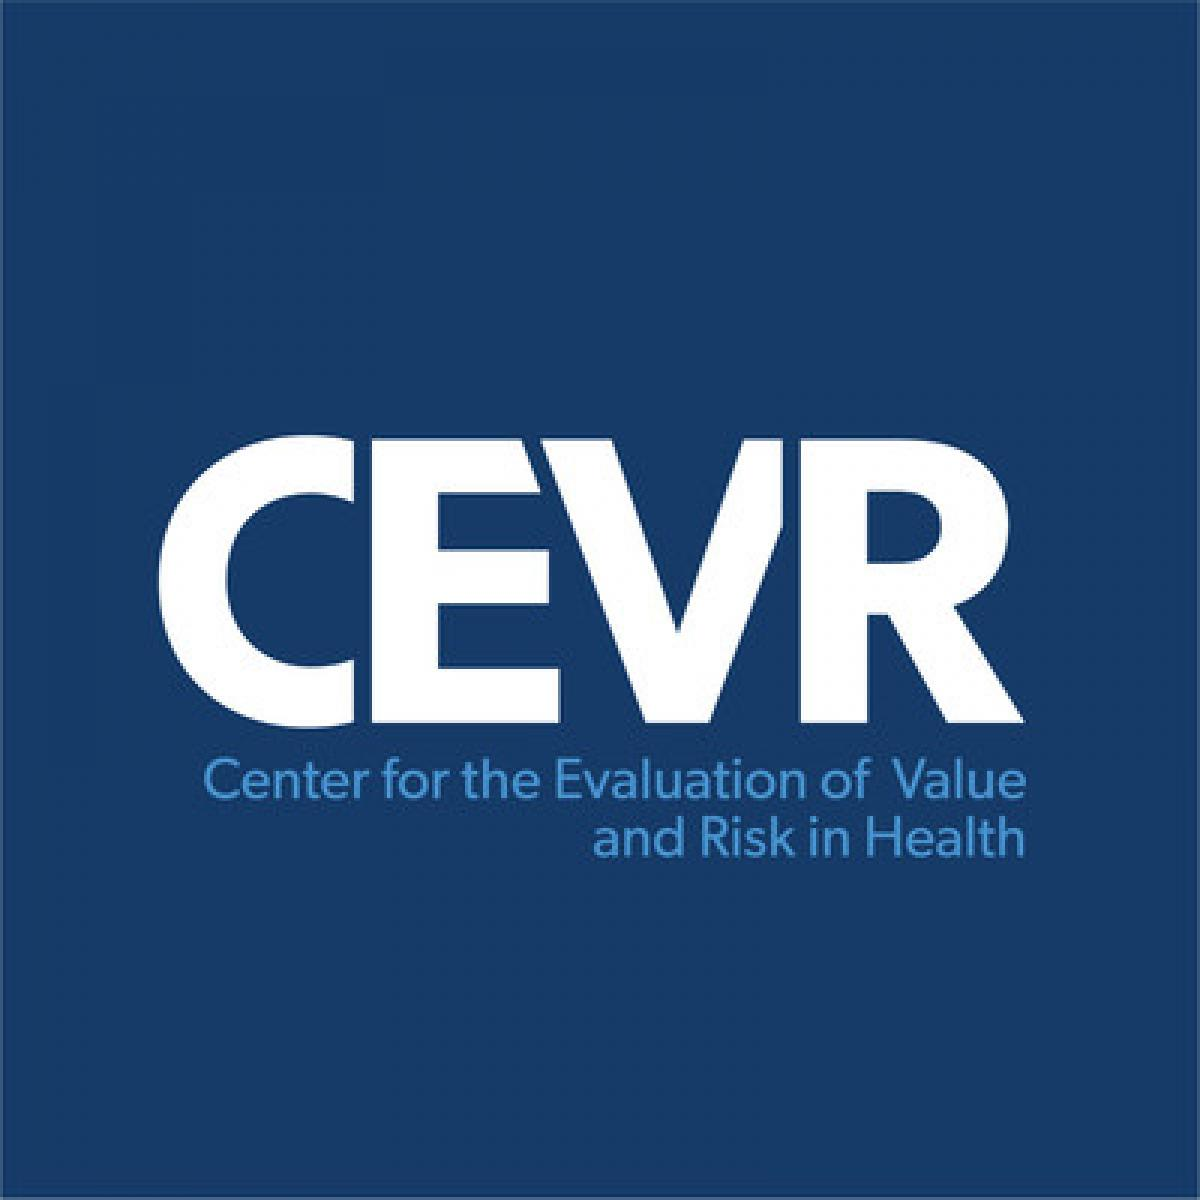 Logo for Center for Evaluation of Value and Risk in Health (CEVR)